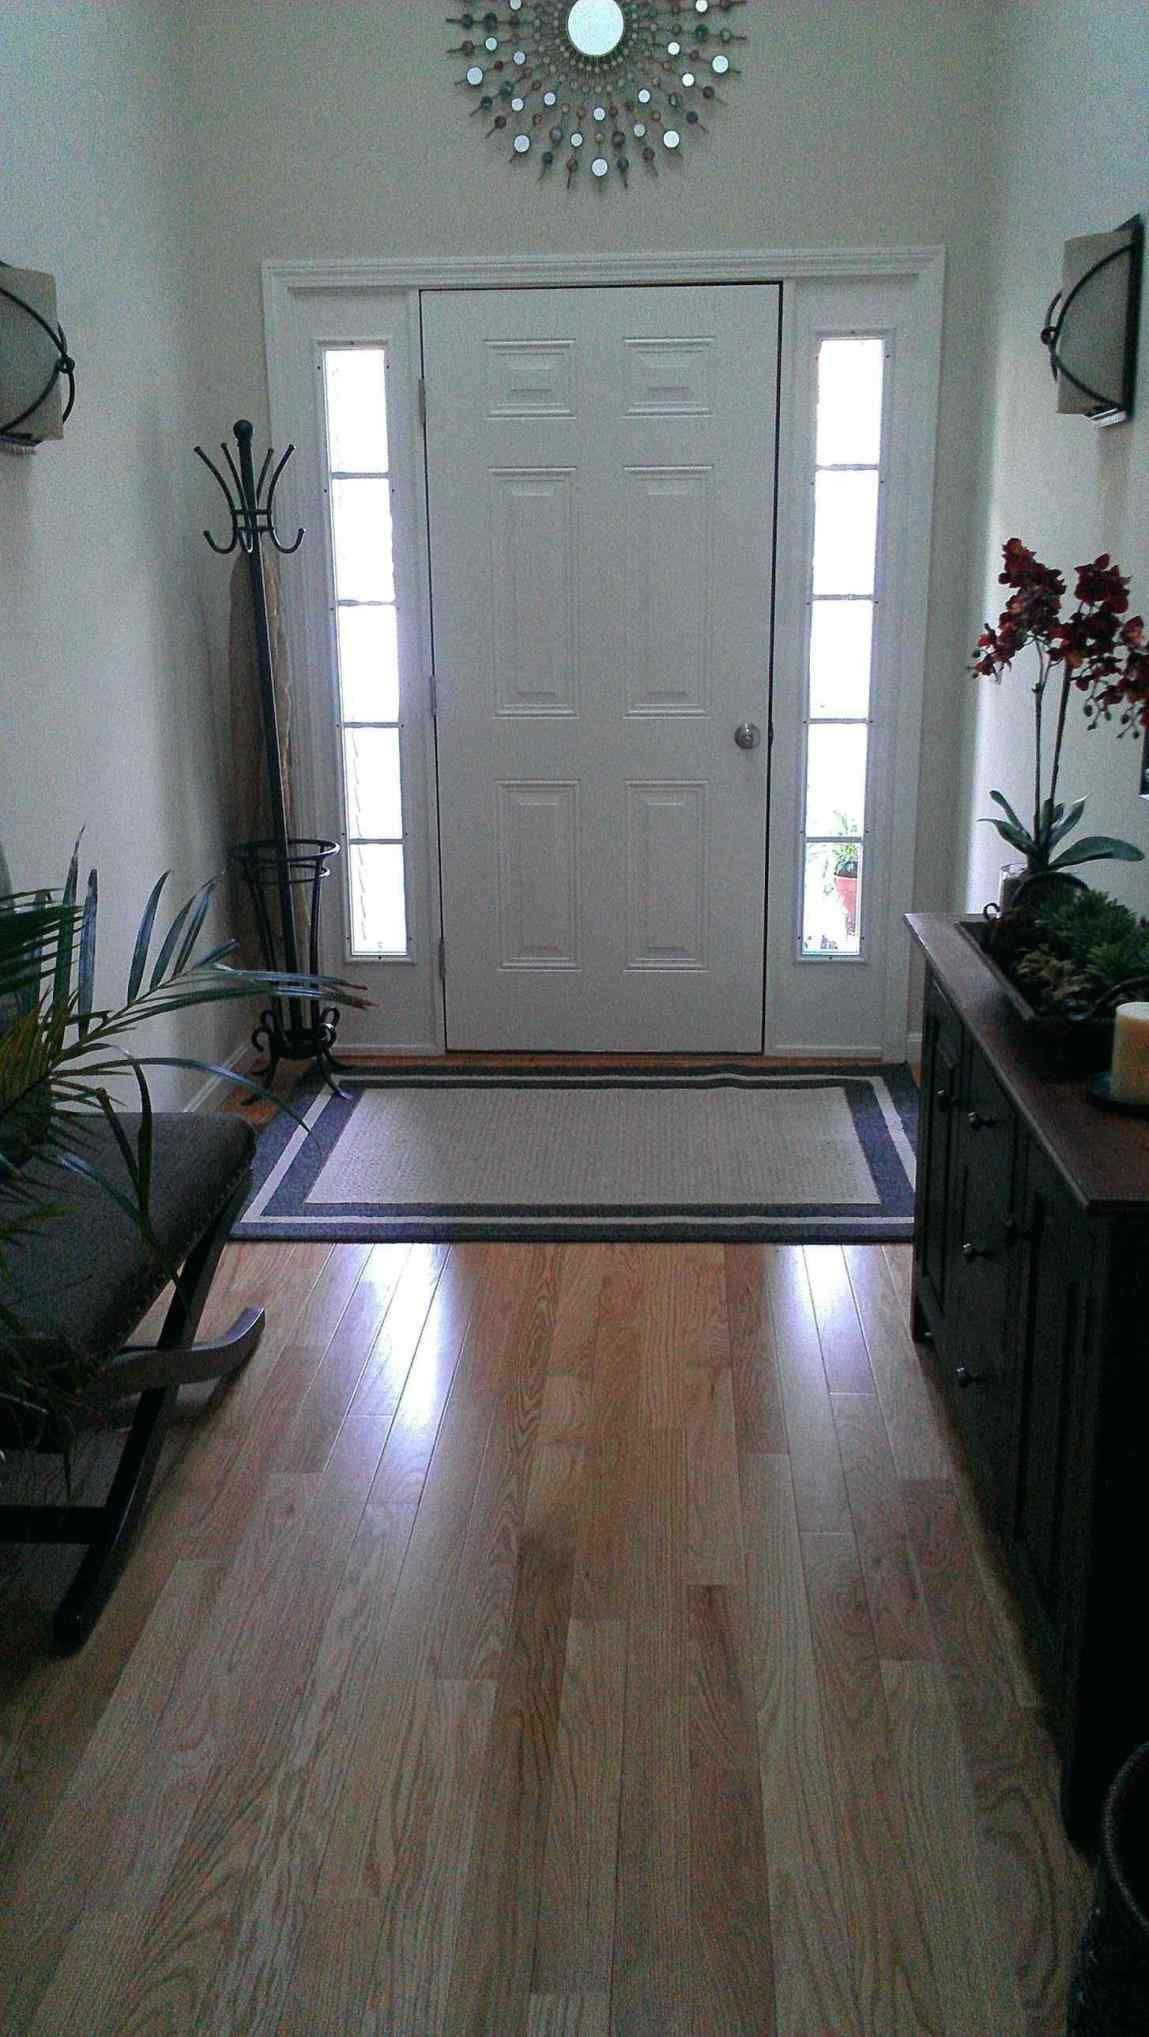 Lovely Rugs For Inside Front Door For Unique Decoration Front